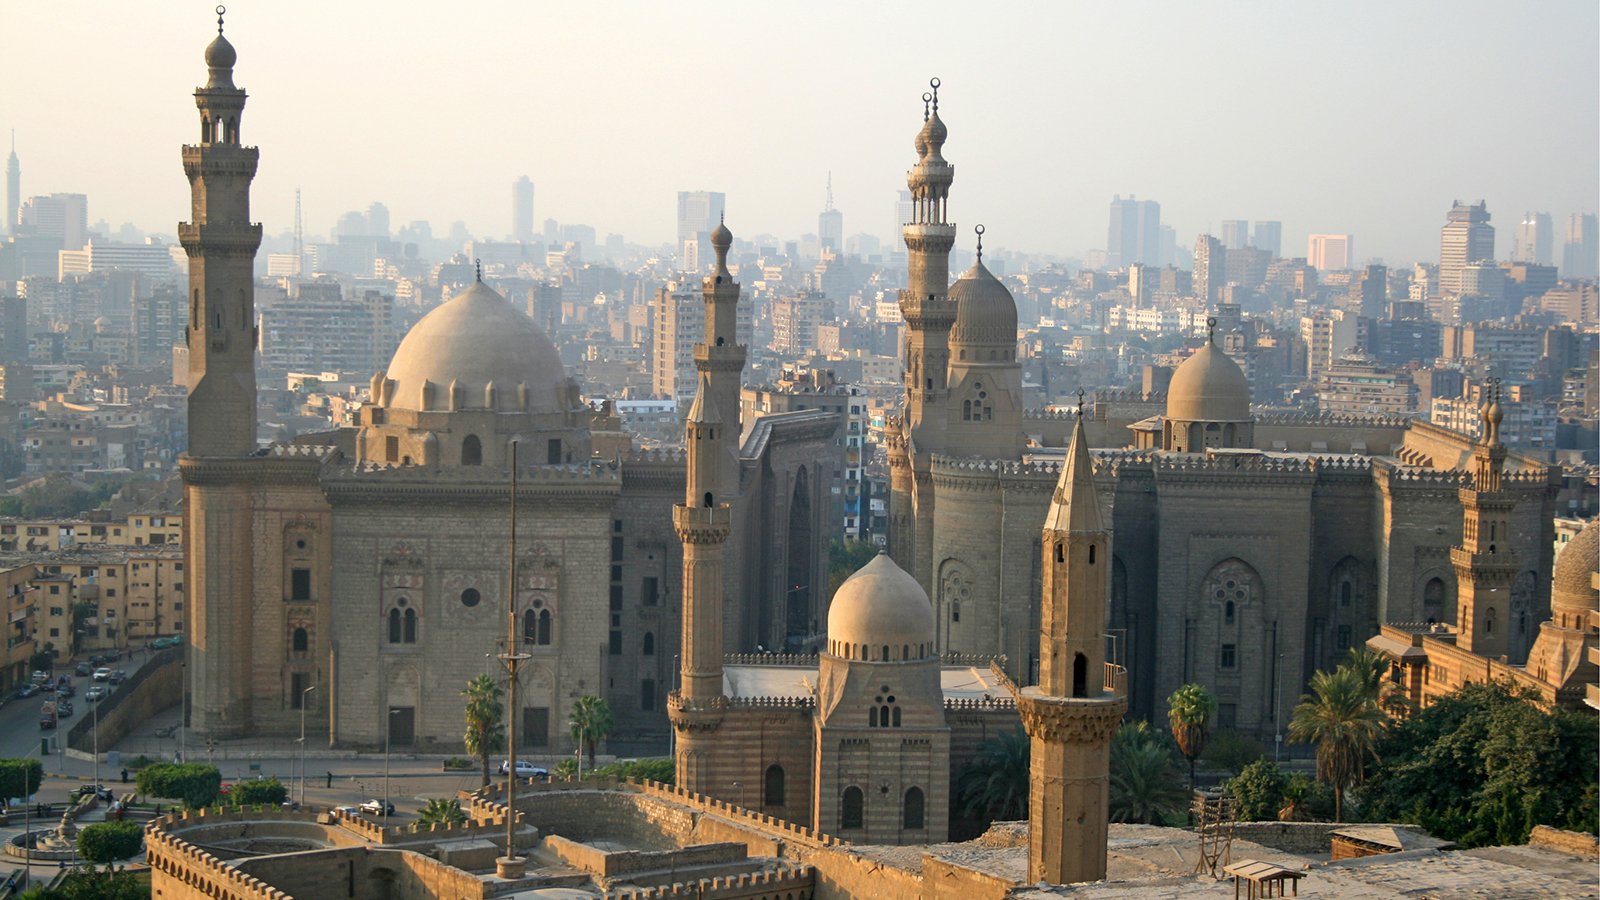 egypt-mosque.ngsversion.1396531545681